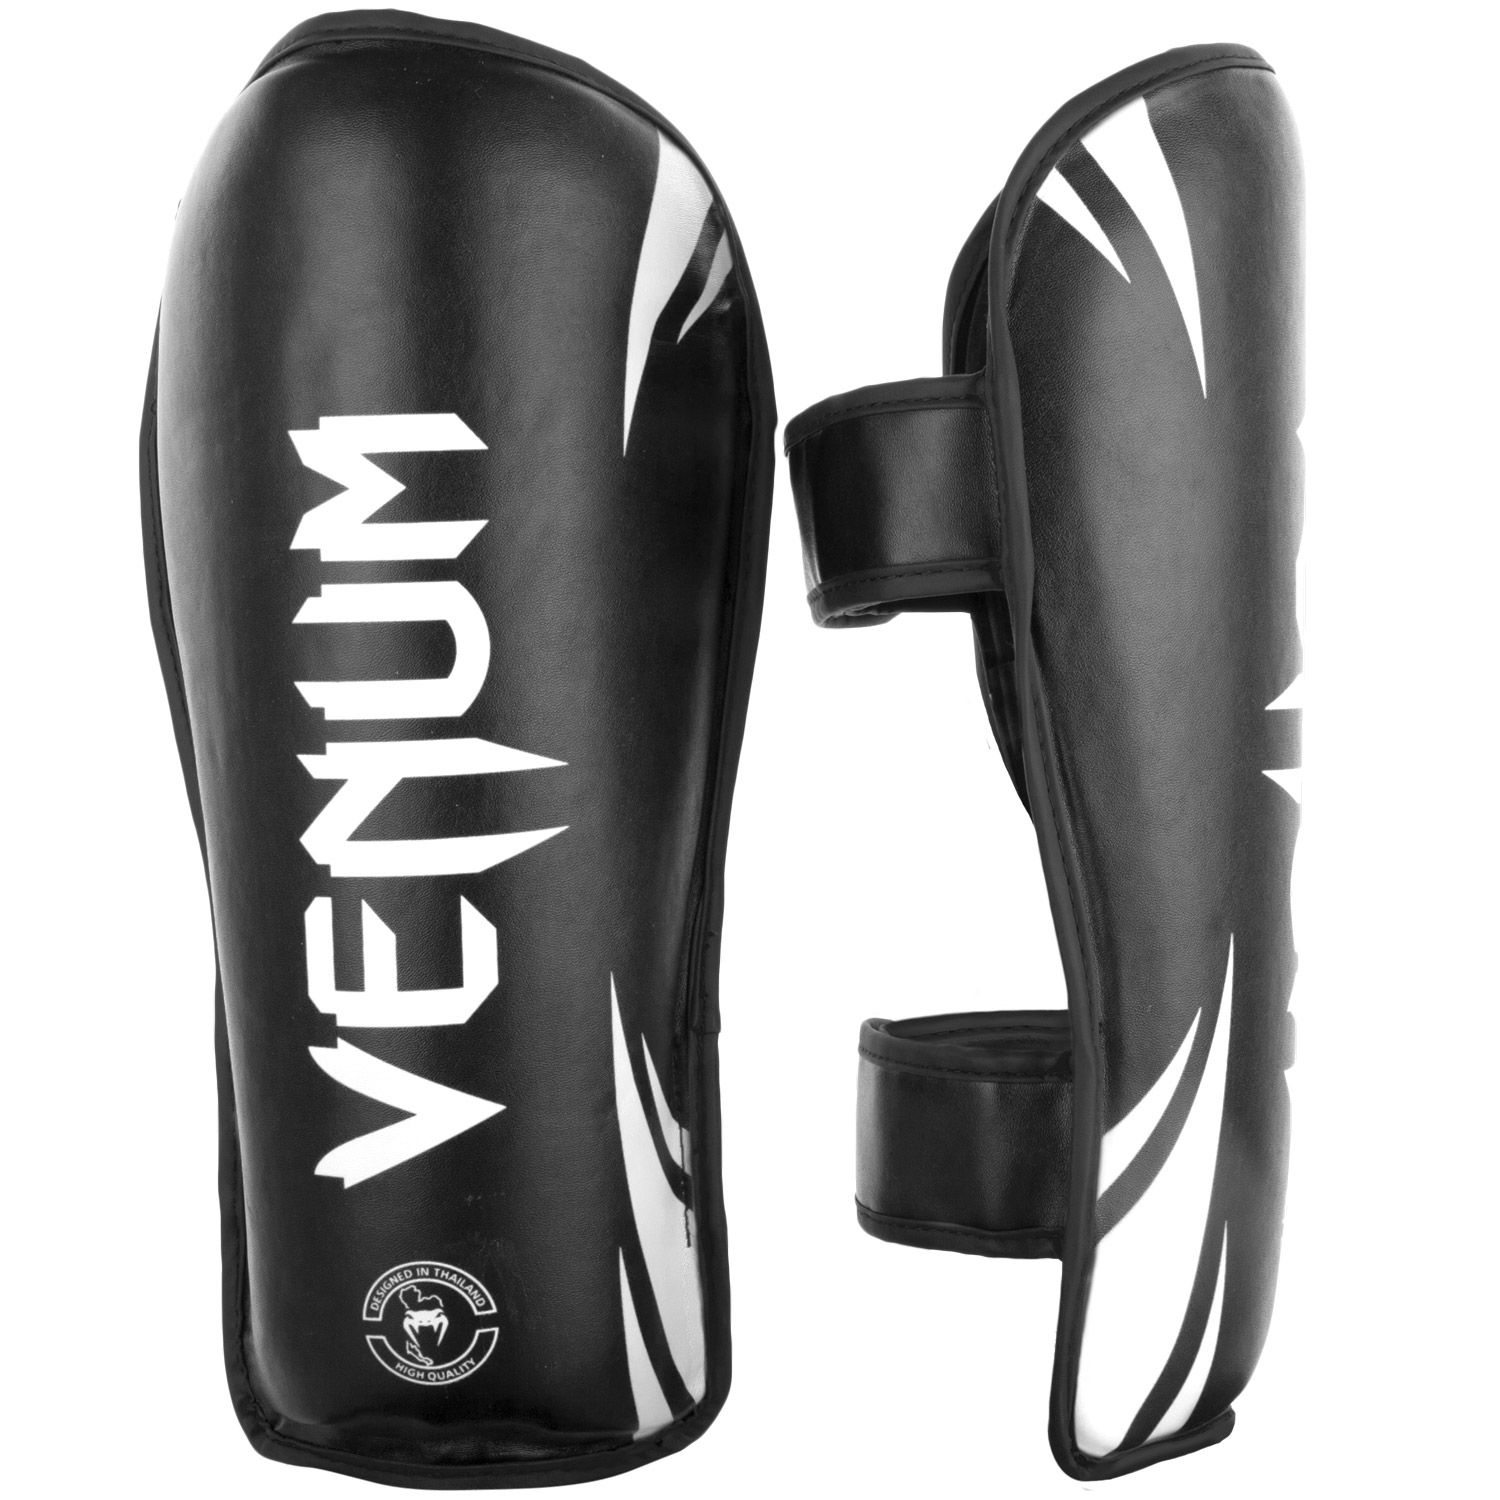 Venum Challenger Shin guards